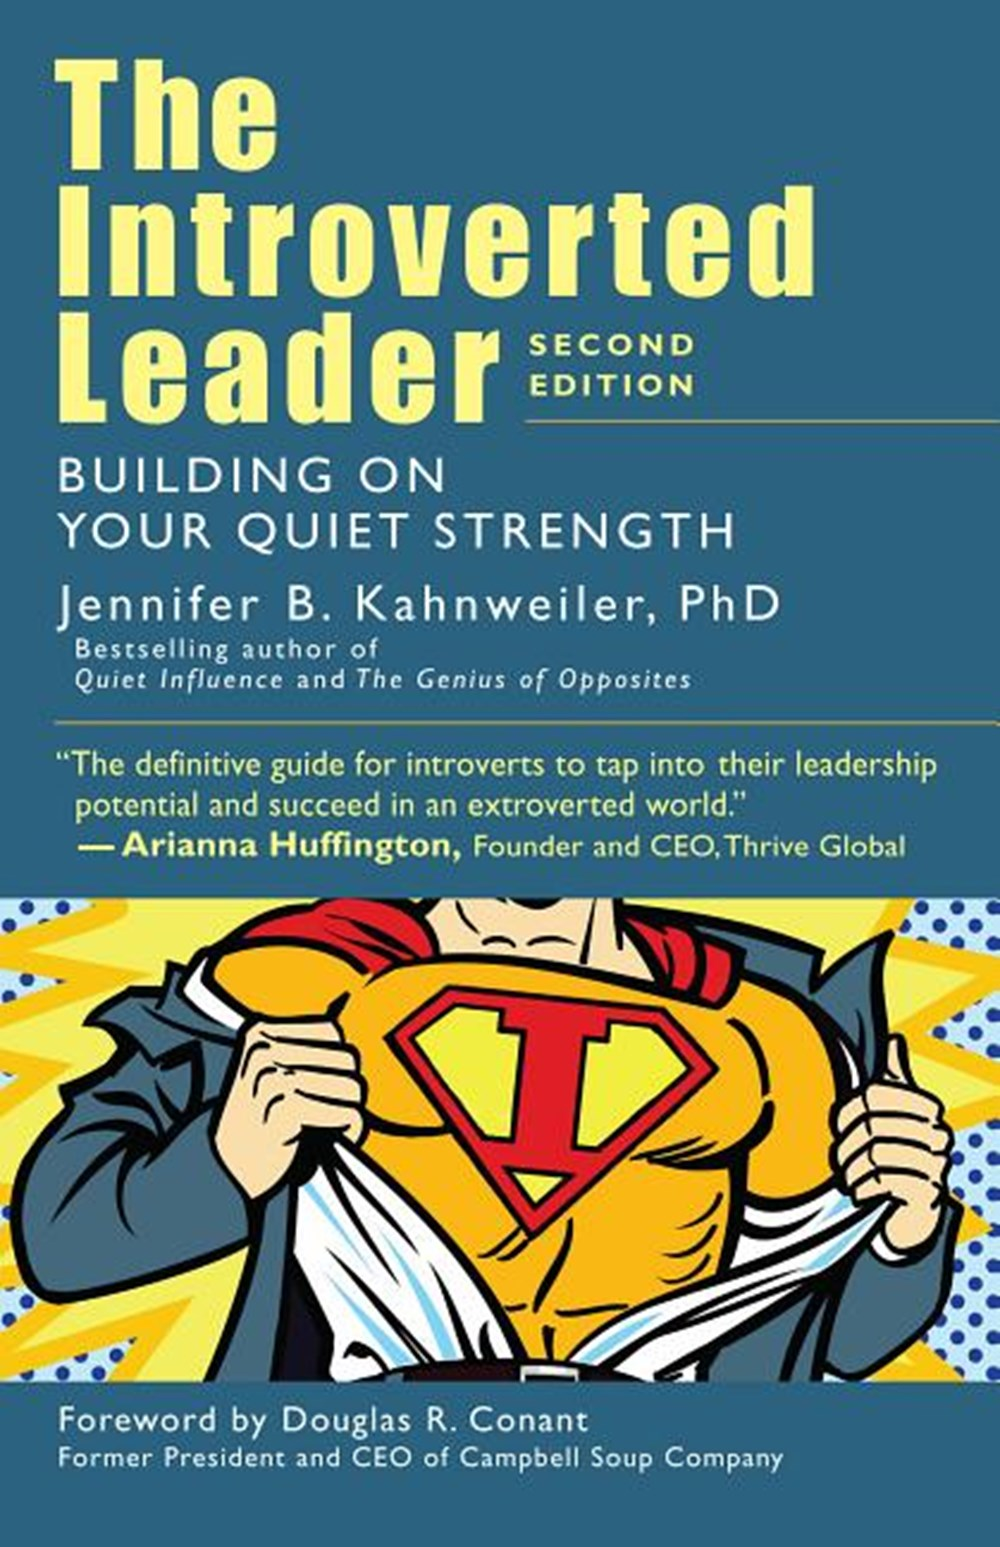 Introverted Leader Building on Your Quiet Strength